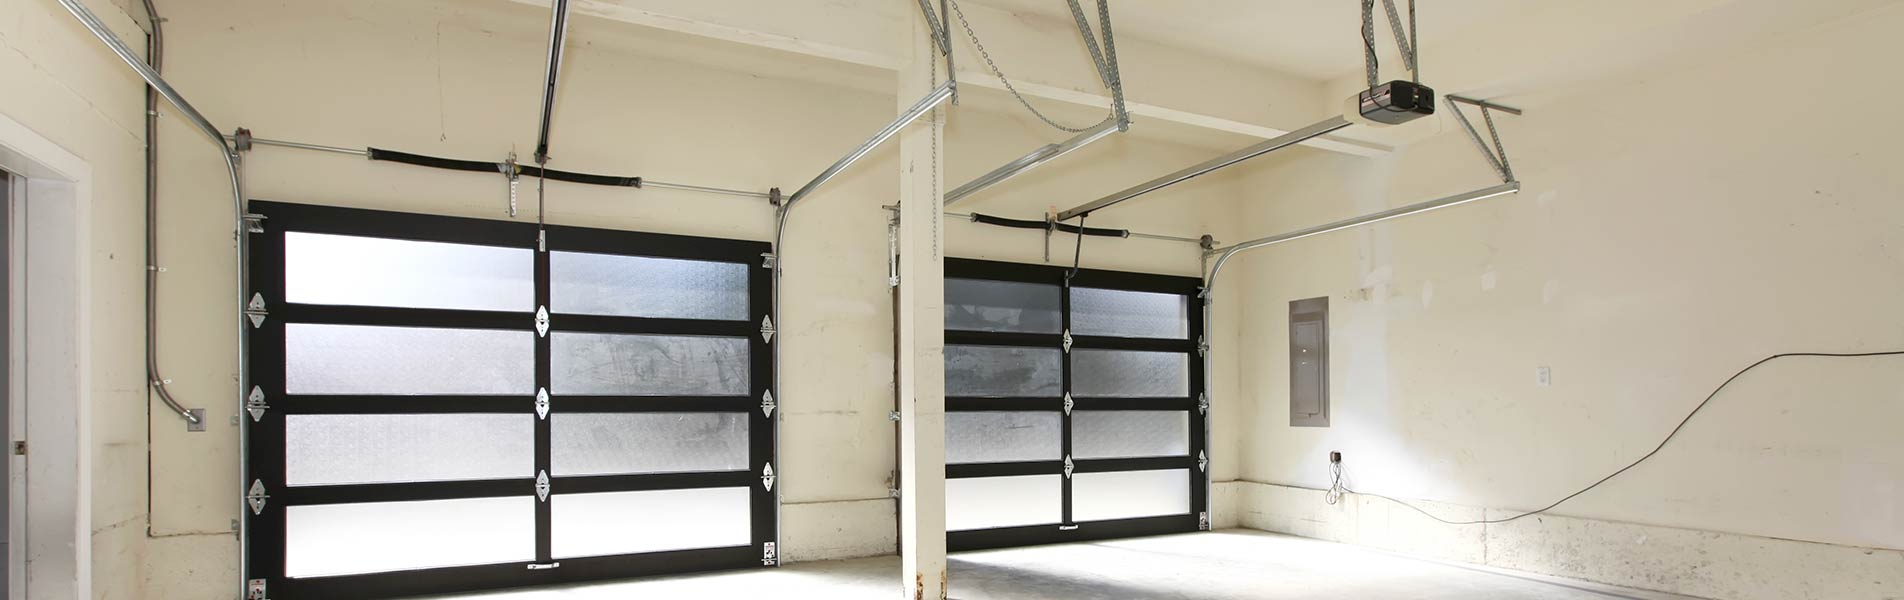 Eagle Garage Door Service Paterson, NJ 973-491-6026